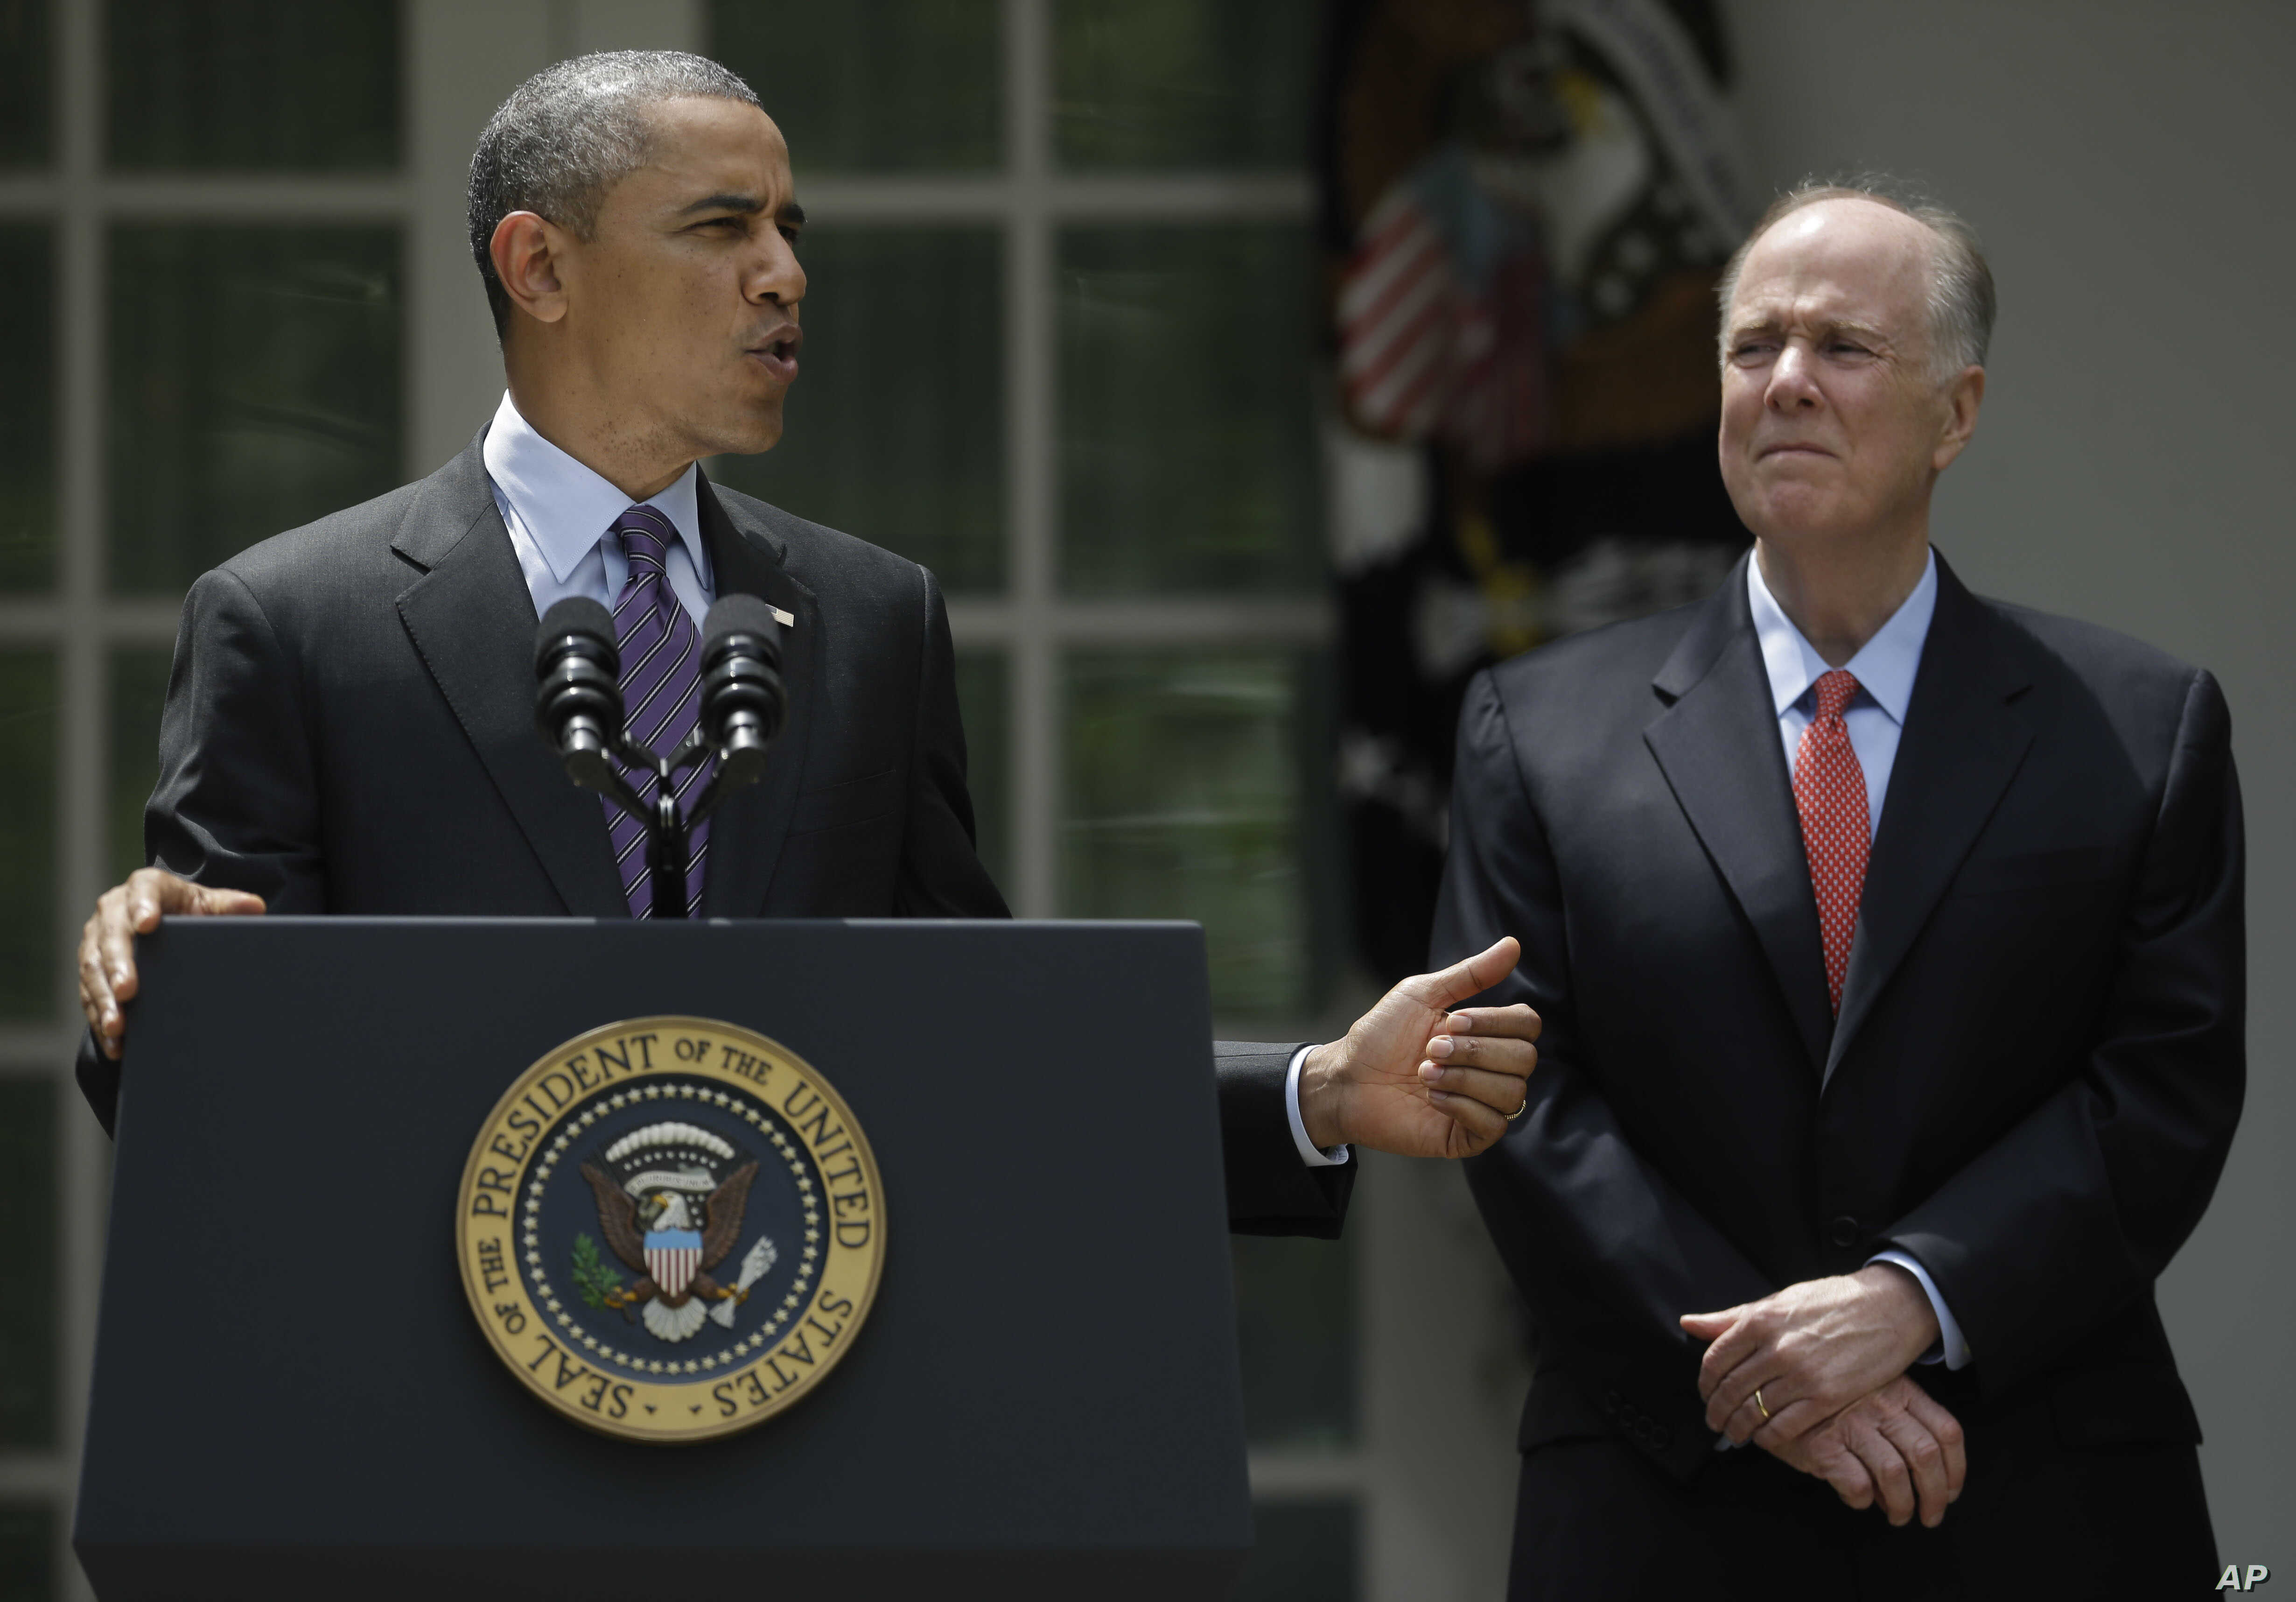 FILE - President Barack Obama, with National Security Advisor Tom Donilon, as he announces his choice for his next National Security Advisor in the Rose Garden of the White House in Washington, June 5, 2013.